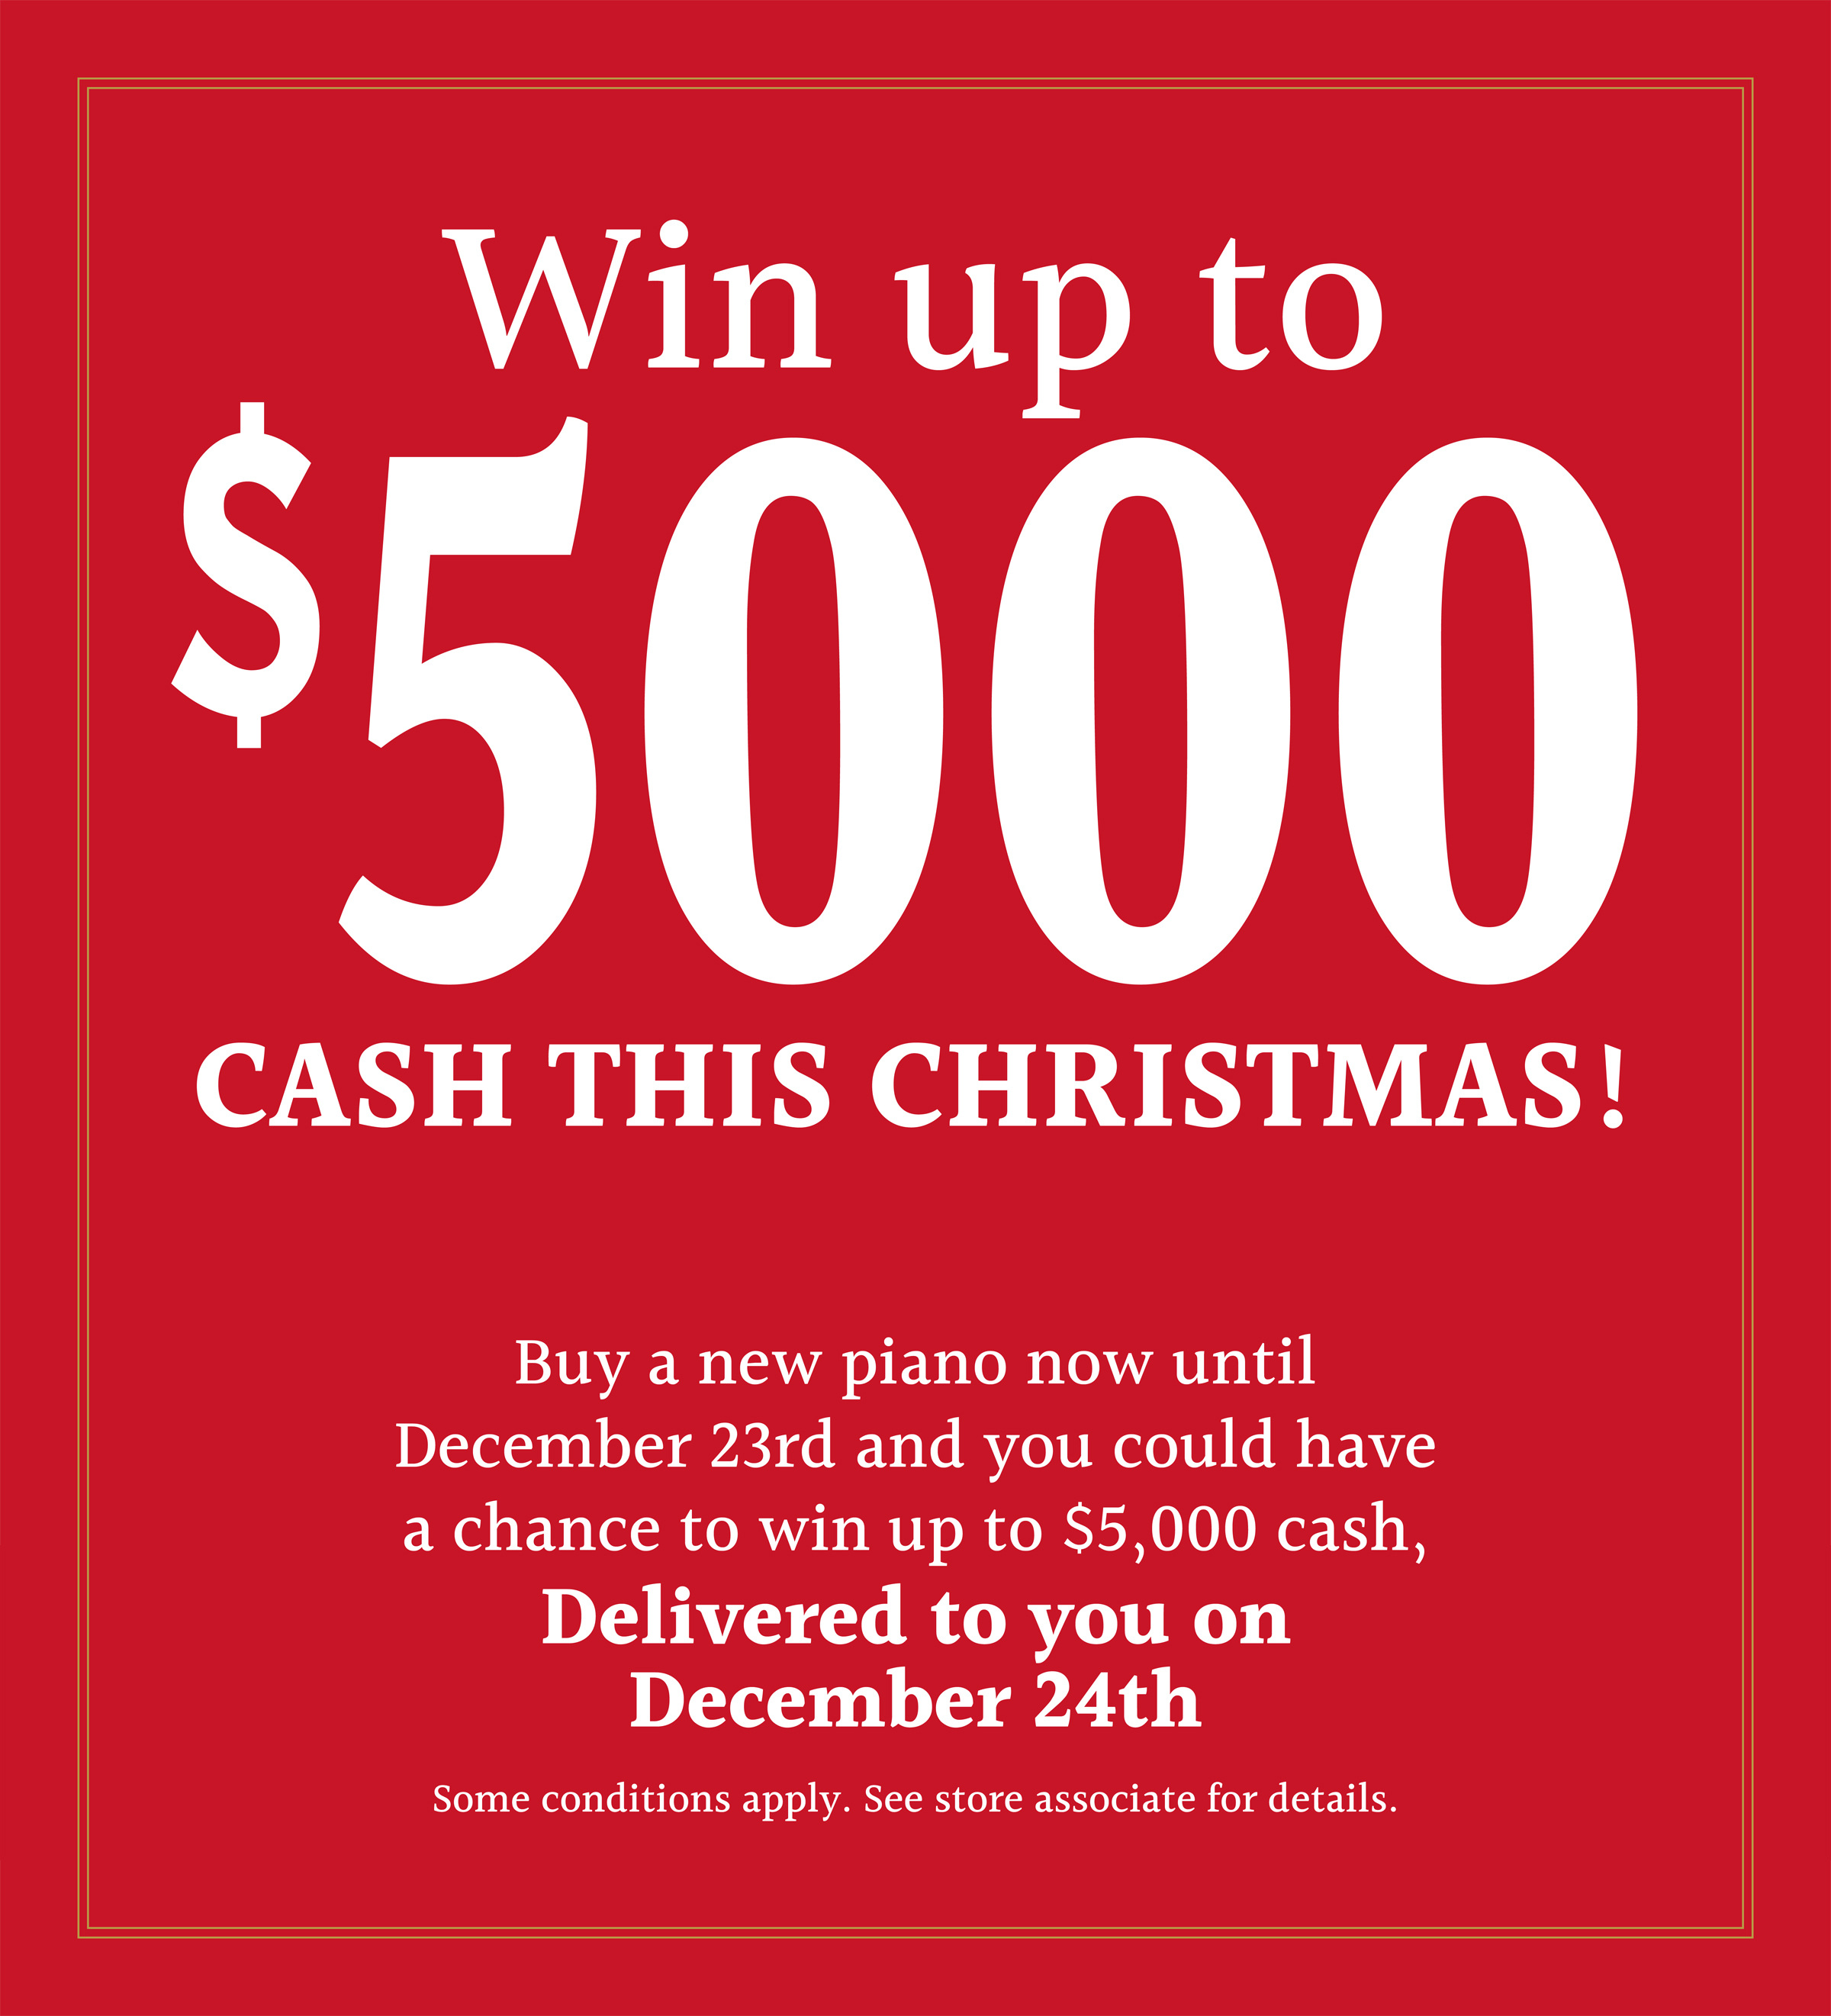 Win up to $5000 cash this Christmas!